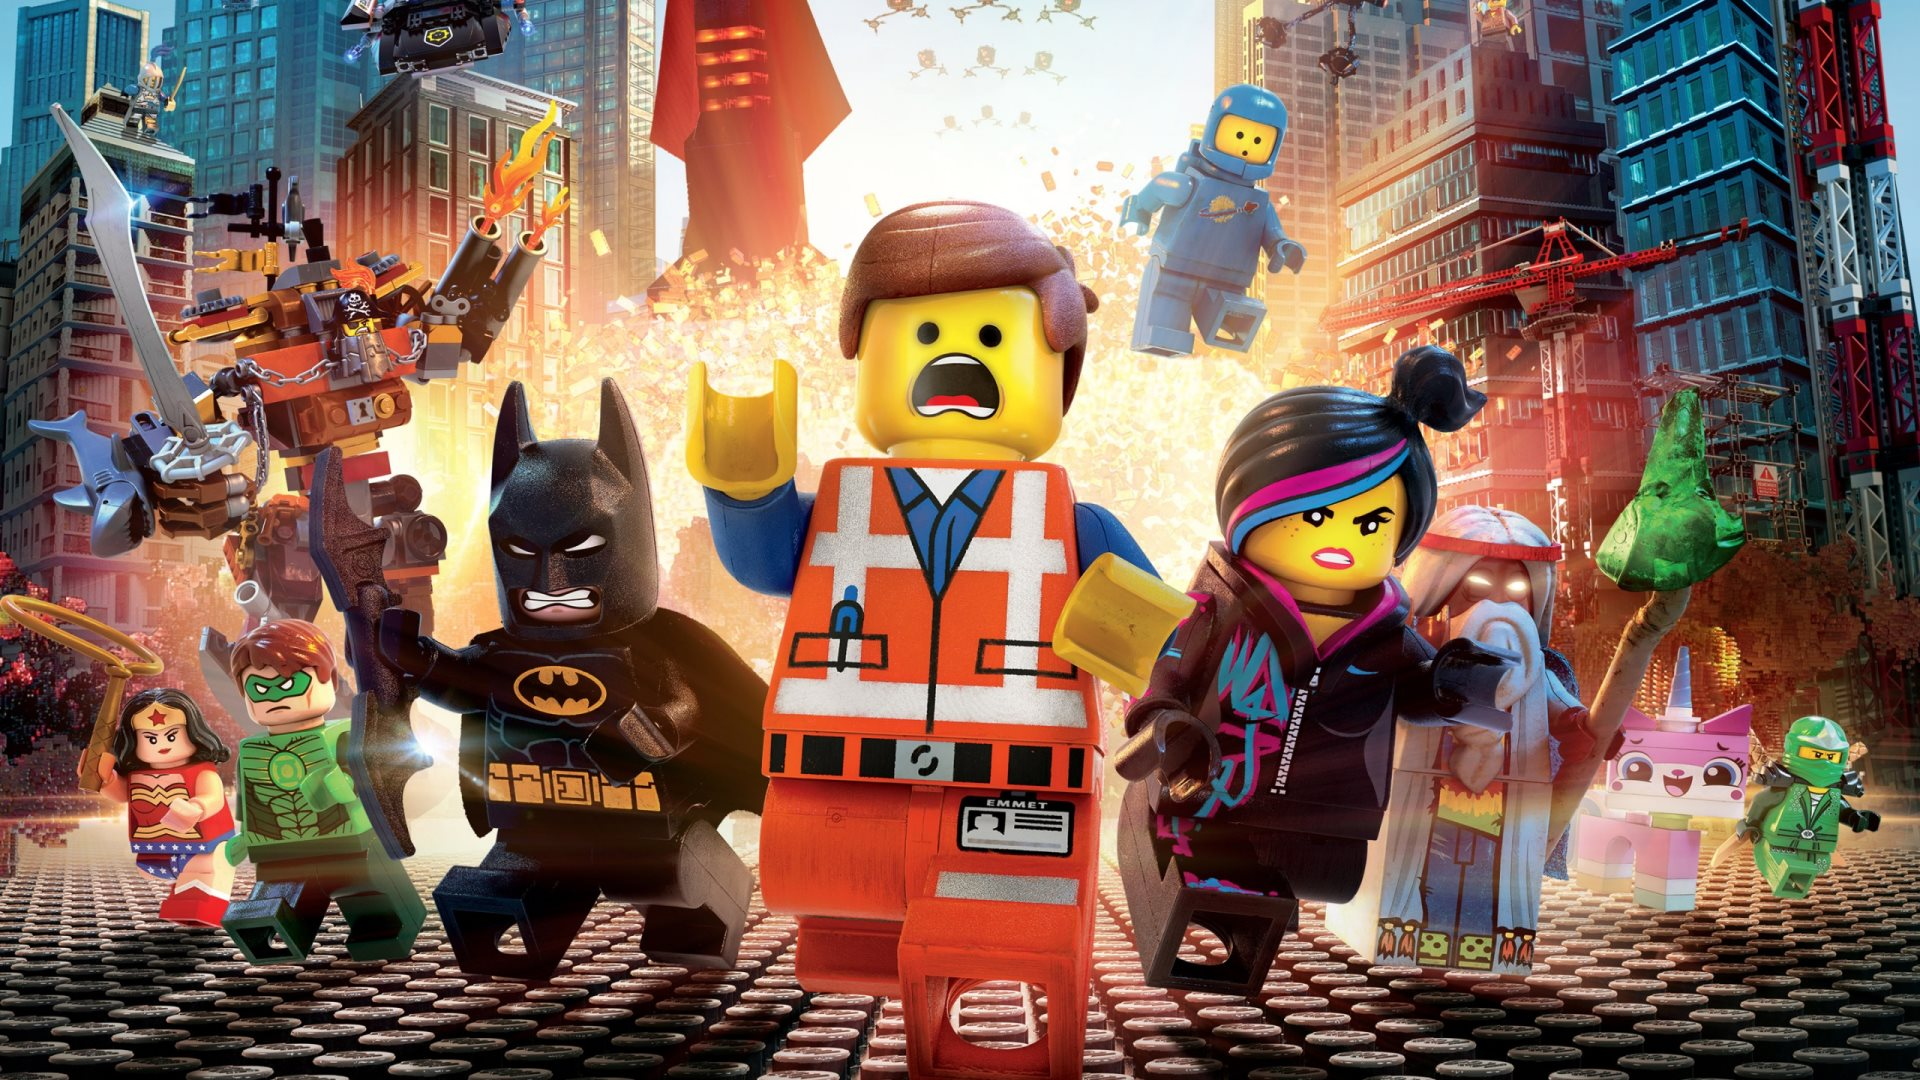 Lego Movie Wallpapers